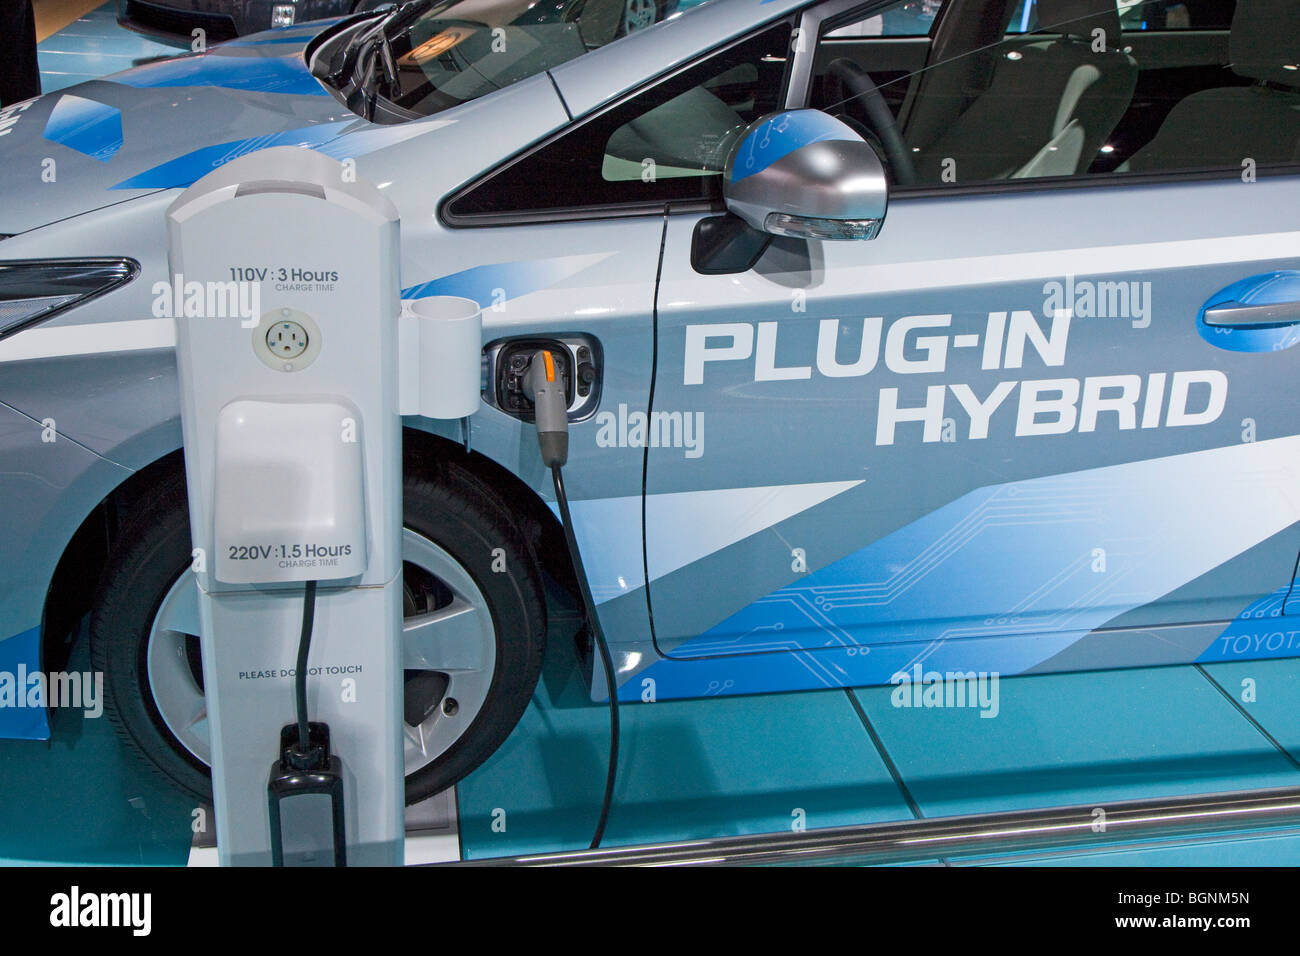 The Toyota Prius plug-in hybrid concept car - Stock Image